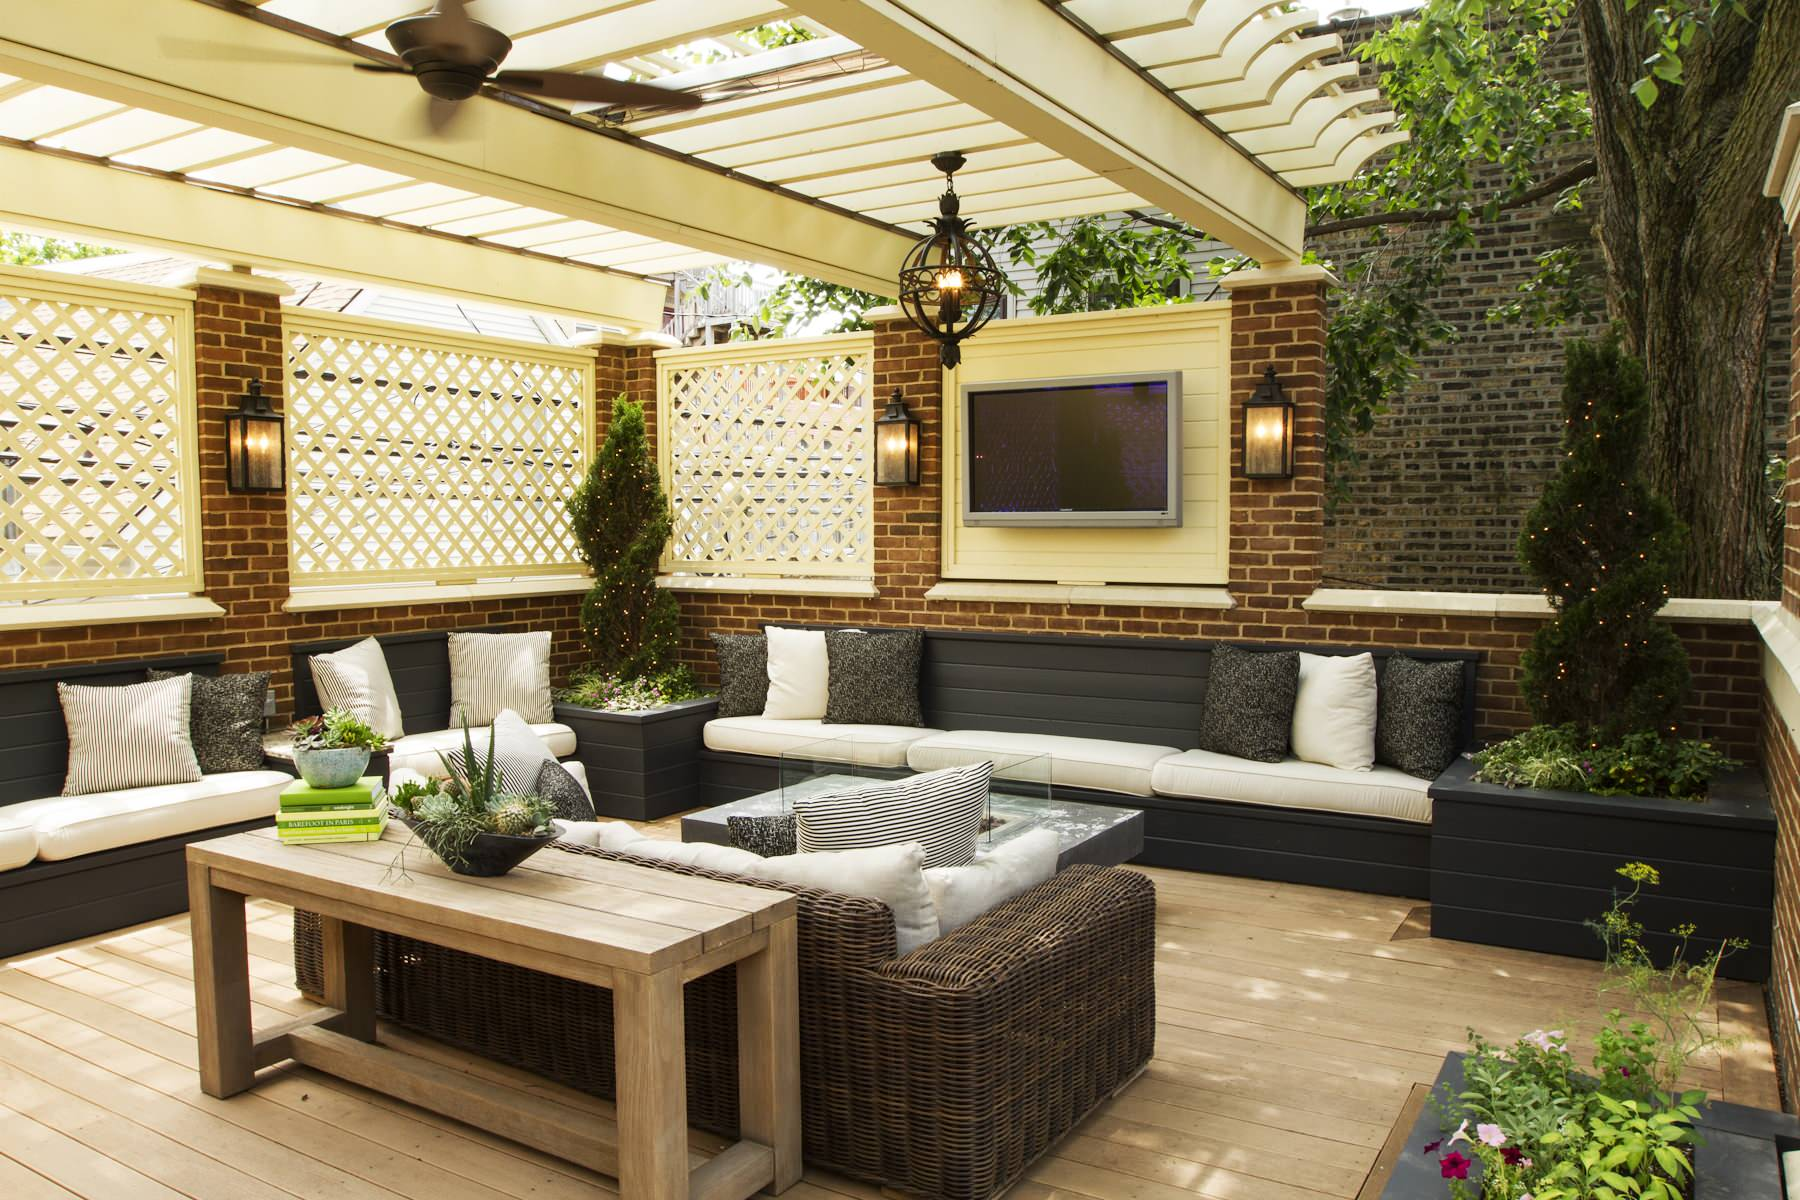 What is a Pergola Traditional Porch Hanging Outdoor Lantern Beige Pergola Built in Bench